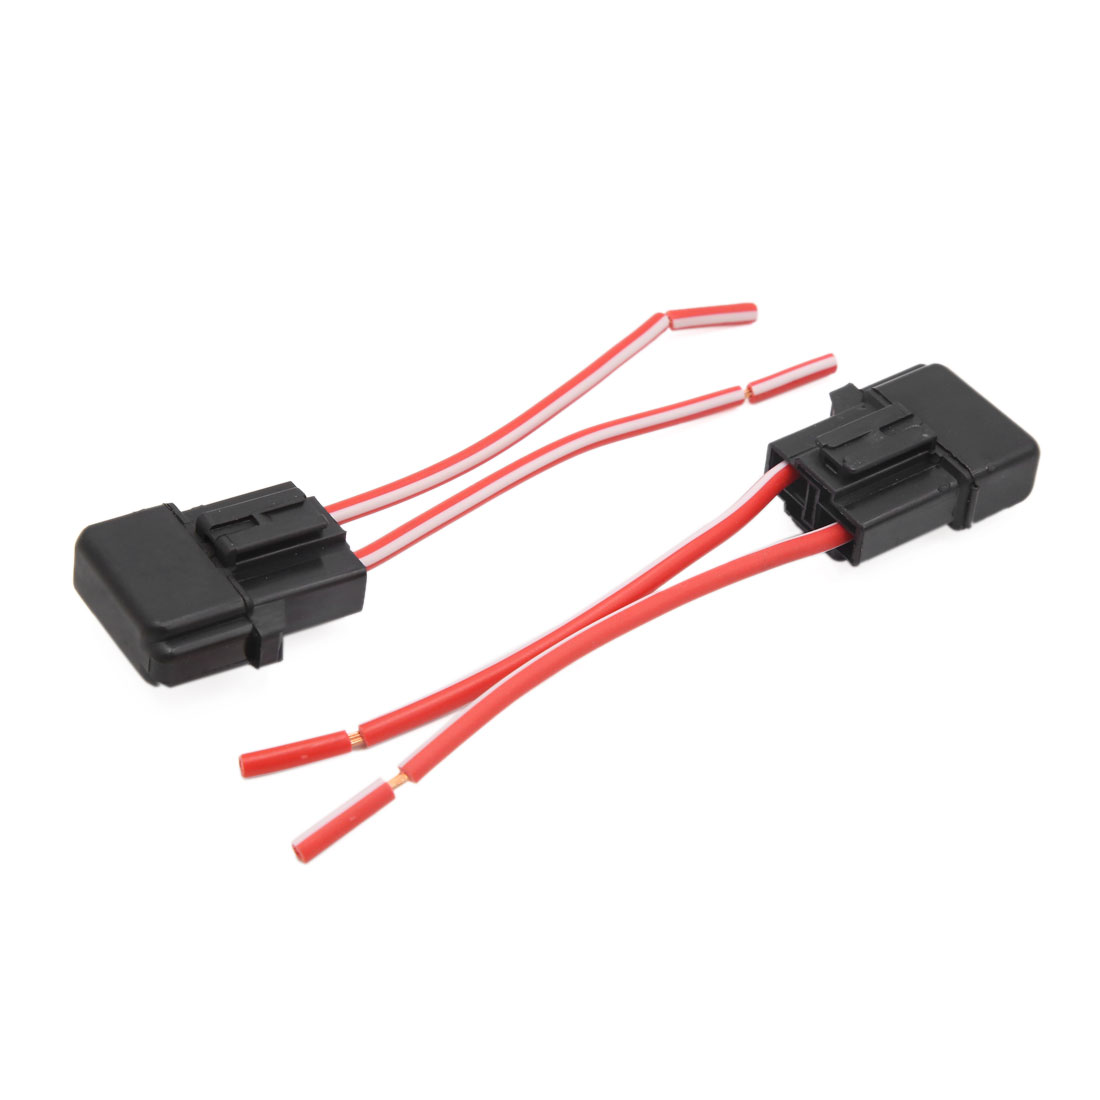 2pcs Black Plastic Square Shell Cap Wiring Harness Fuse Holder for Car Vehicle - image 2 of 2